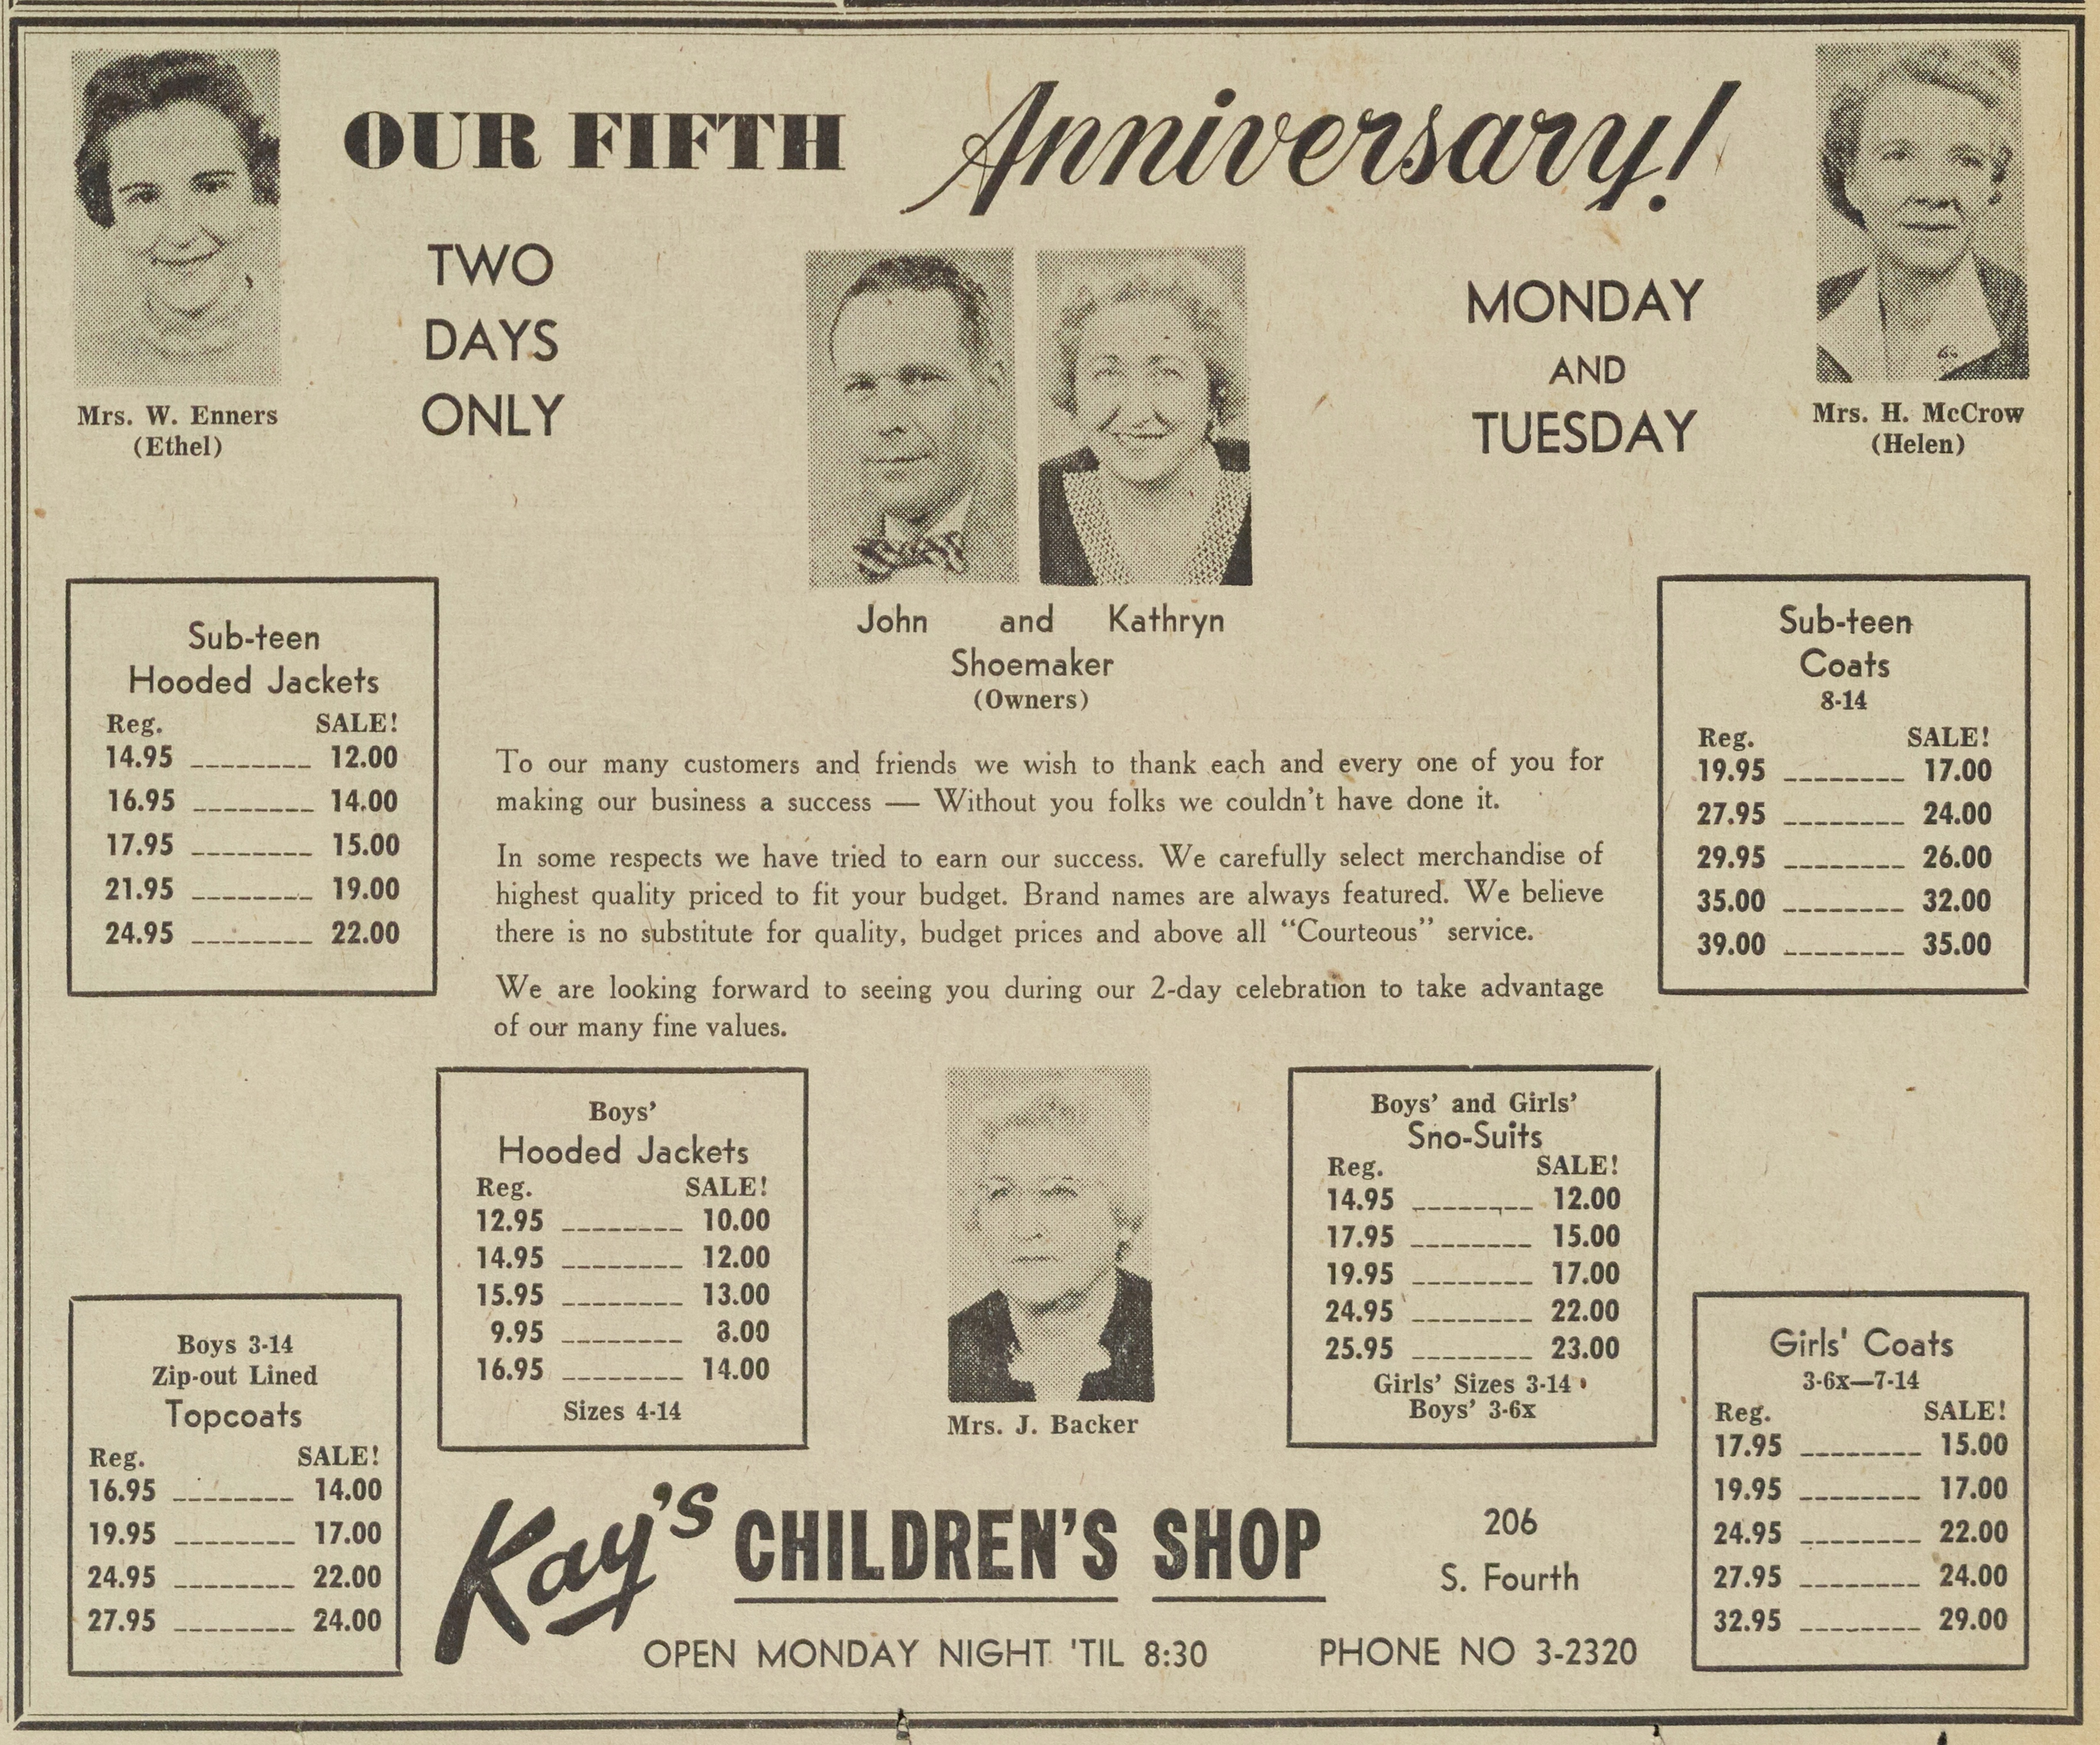 Kay's Children's Shop image